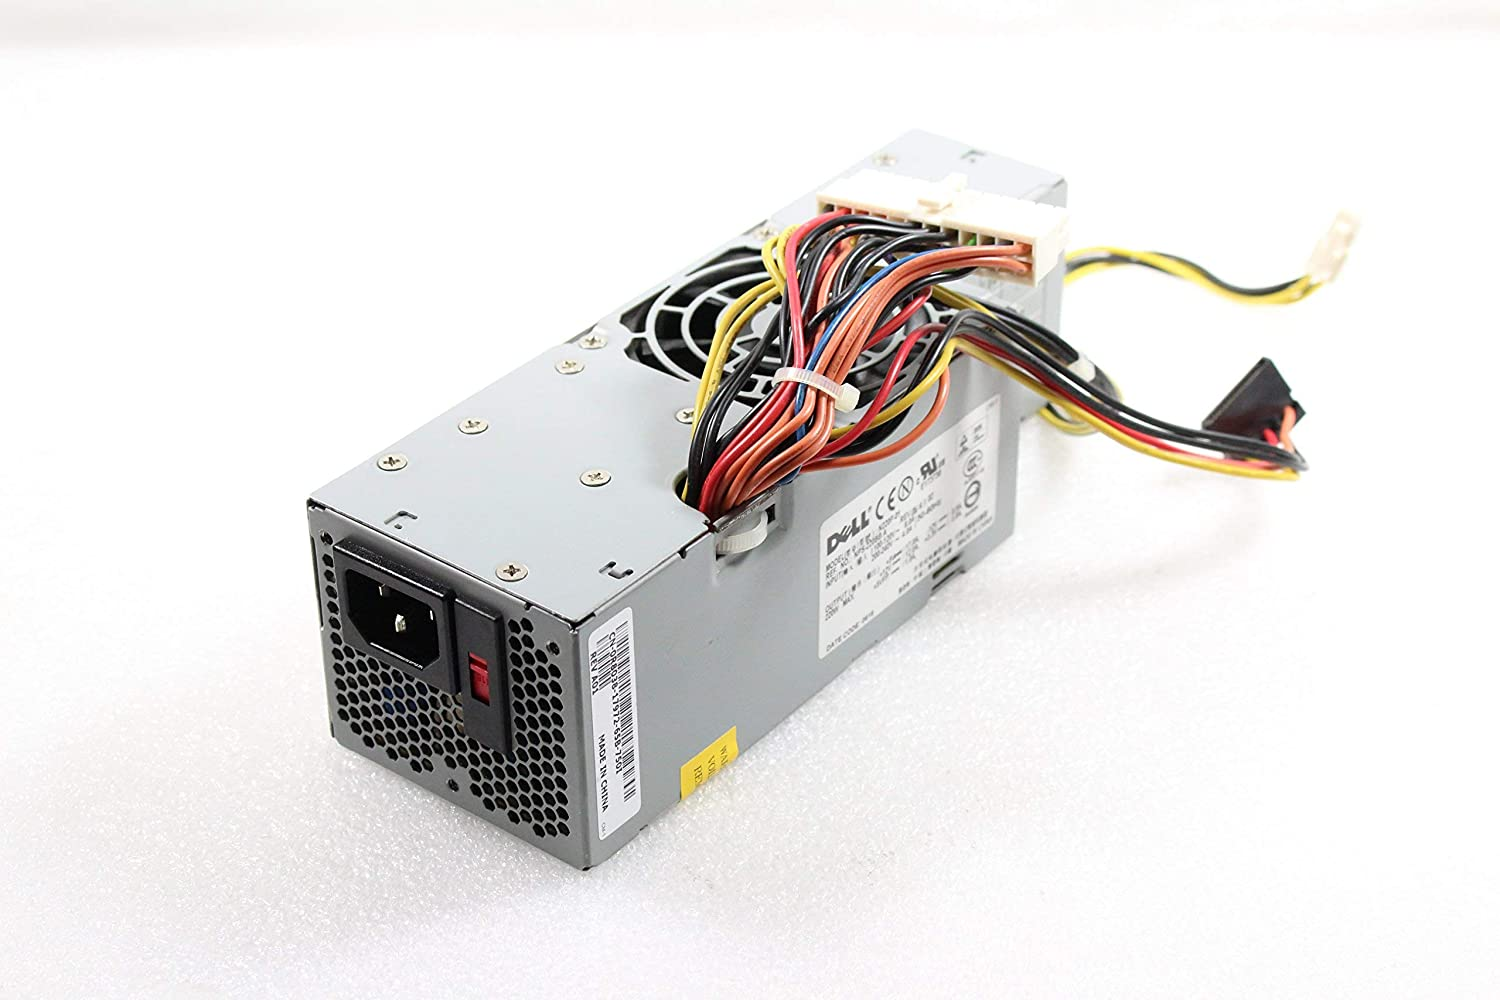 Genuine DELL 220w Power Supply PSU For the Optiplex GX520 and GX620 Small Form Factor Systems (SFF) Dimension 5100c Systems Part Numbers: YD358 R8038 N8368 XM554 Model: H220P-01 N220P-01 (Renewed)